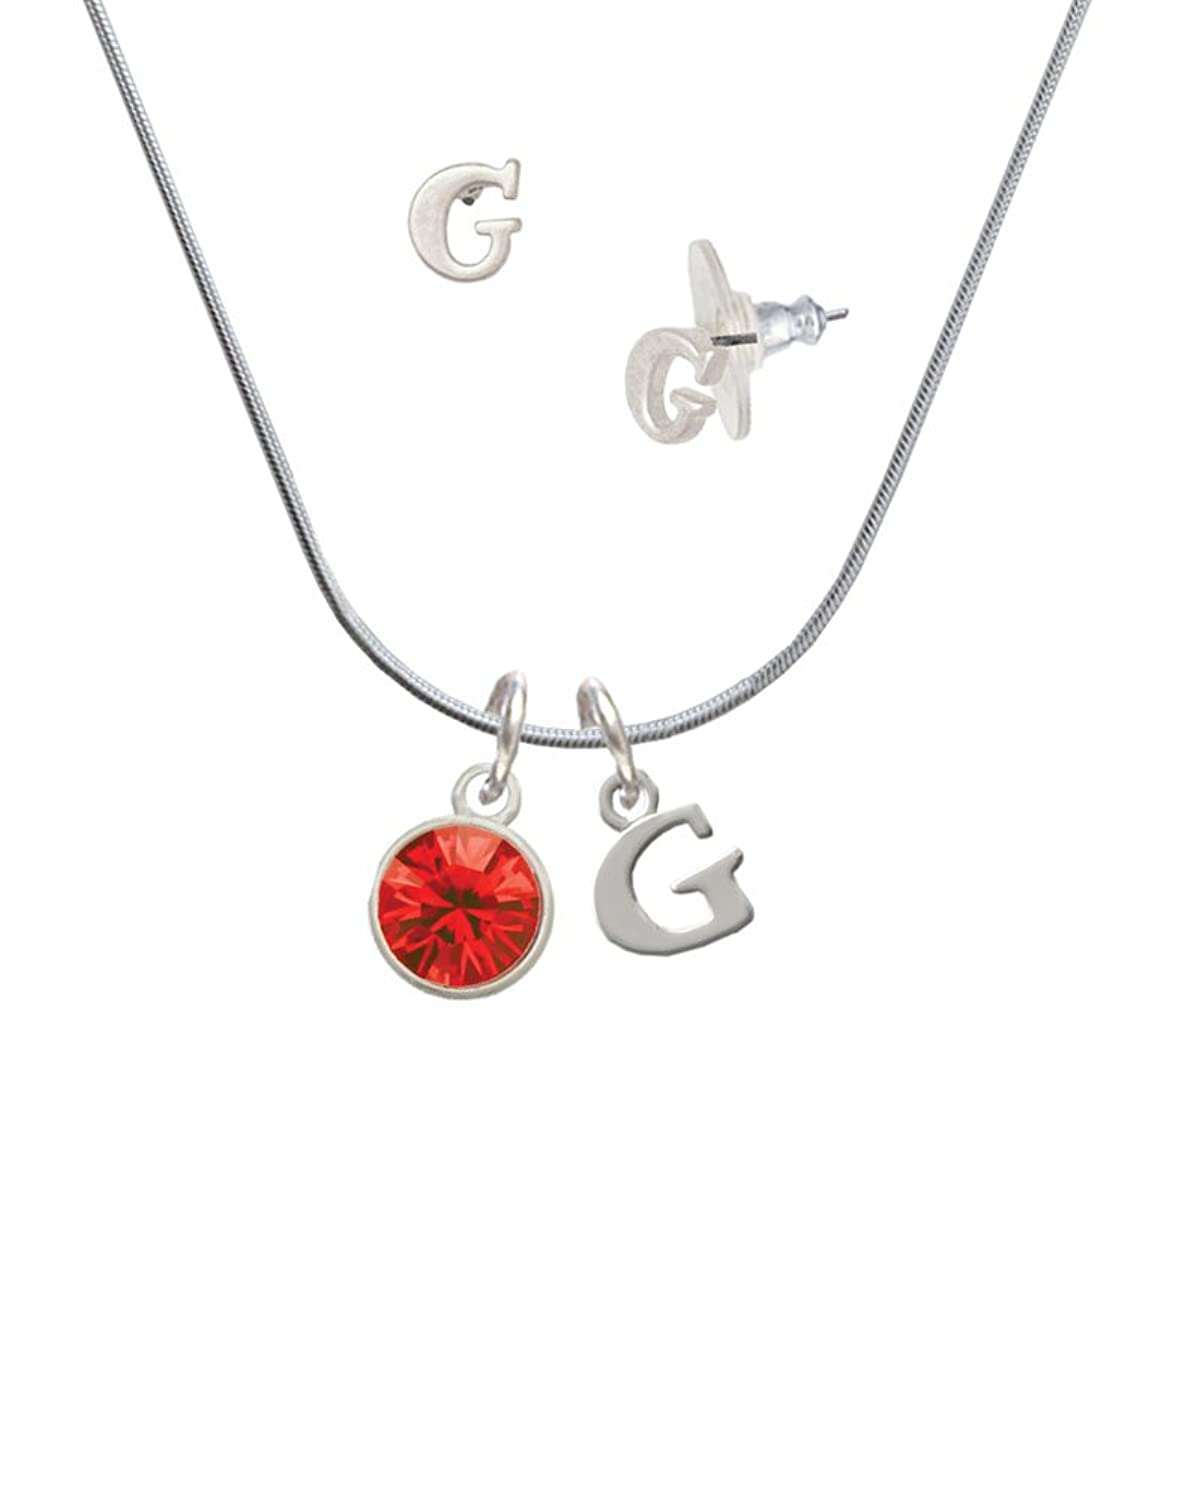 10mm Red Oktant Crystal Drop - G Initial Charm Necklace and Stud Earrings Jewelry Set